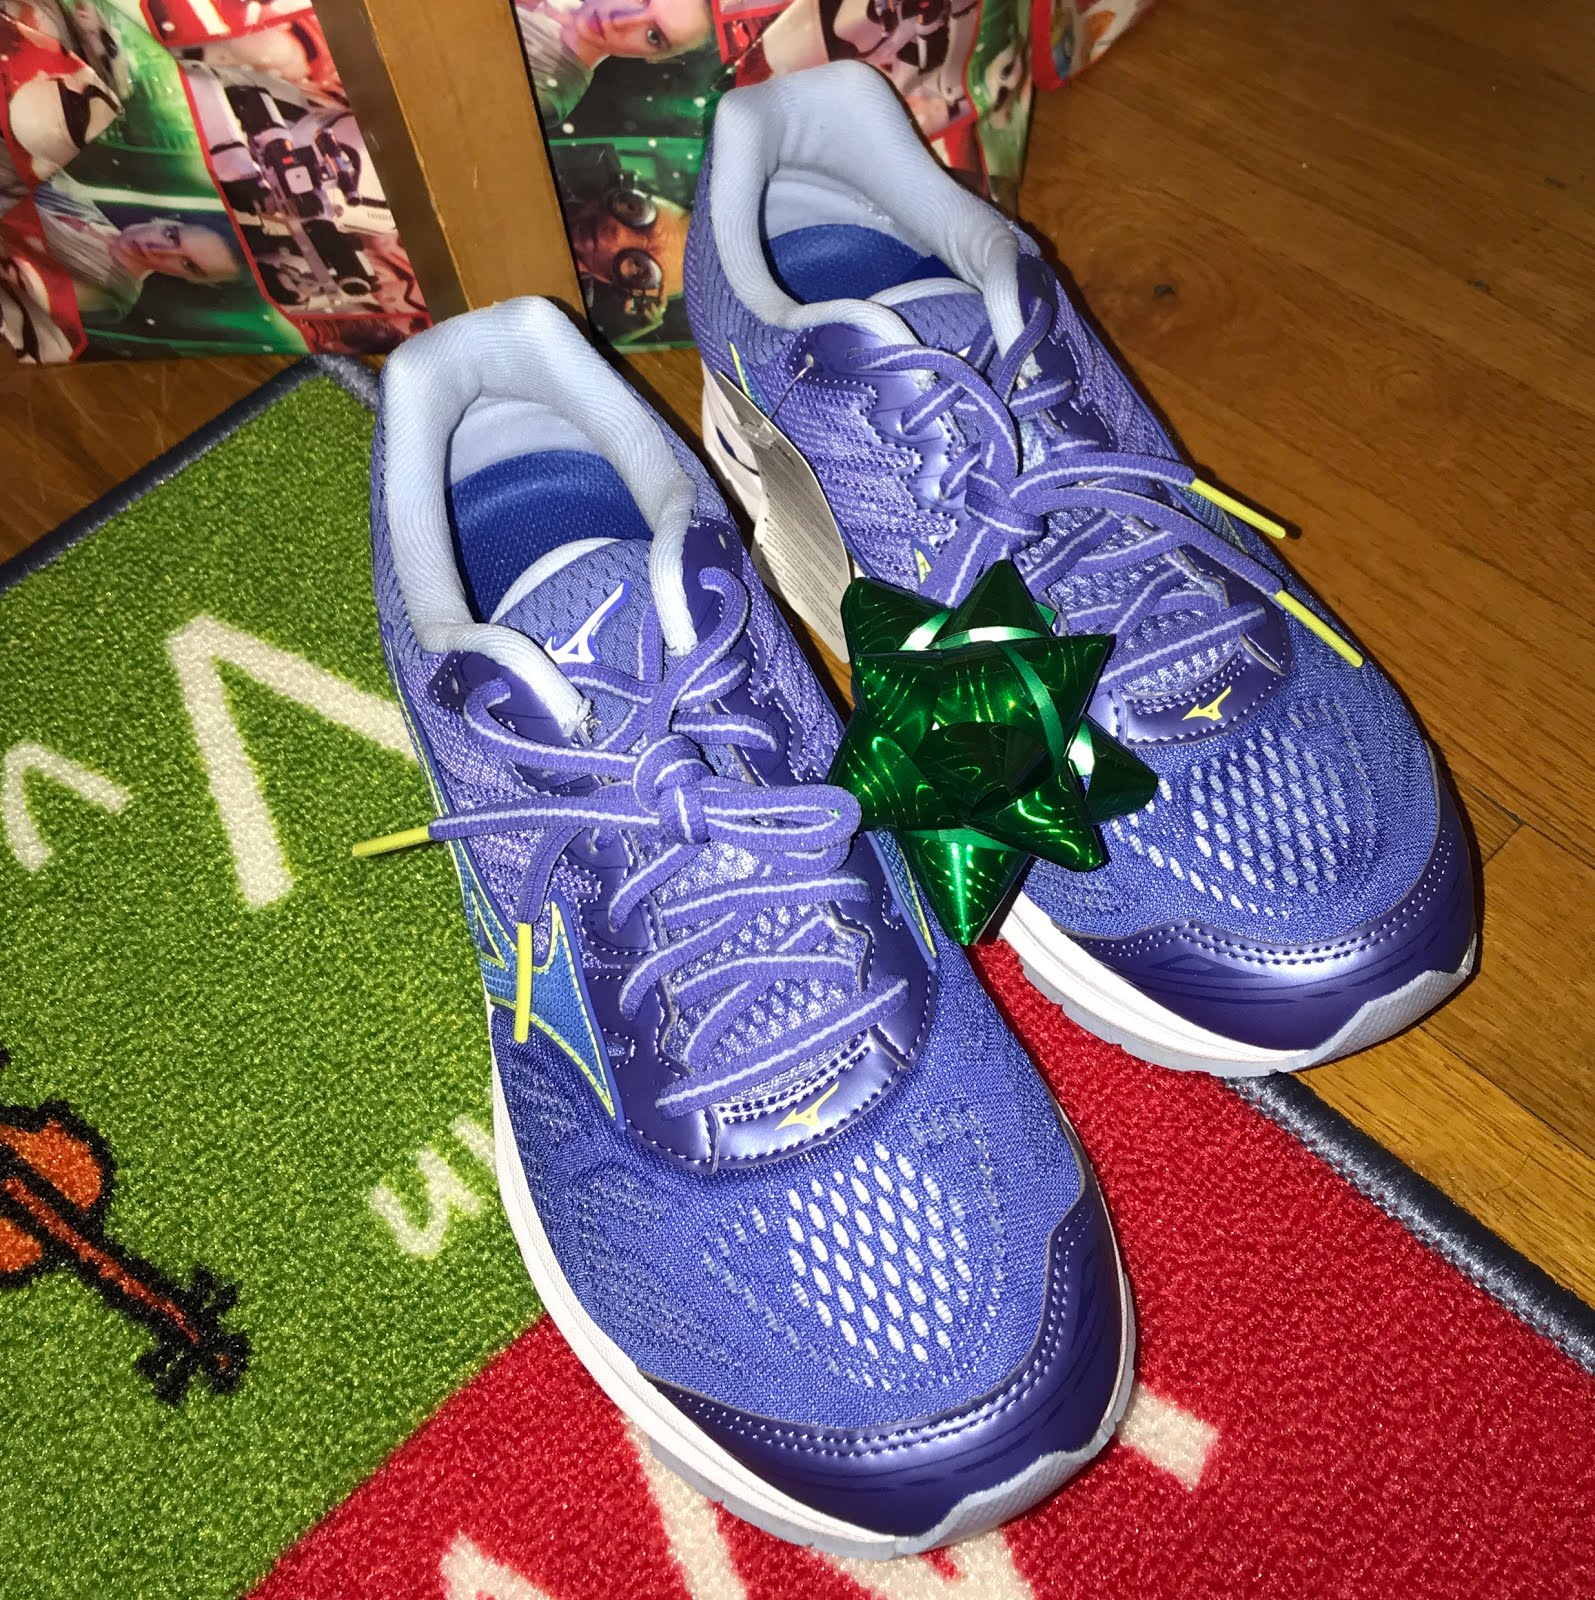 size 40 1618b 447f0 So, as we get ready for this new year and to tackle all those goals you  might have. make sure to spoil yourself or ask Santa Claus for a pair of  the Mizuno ...